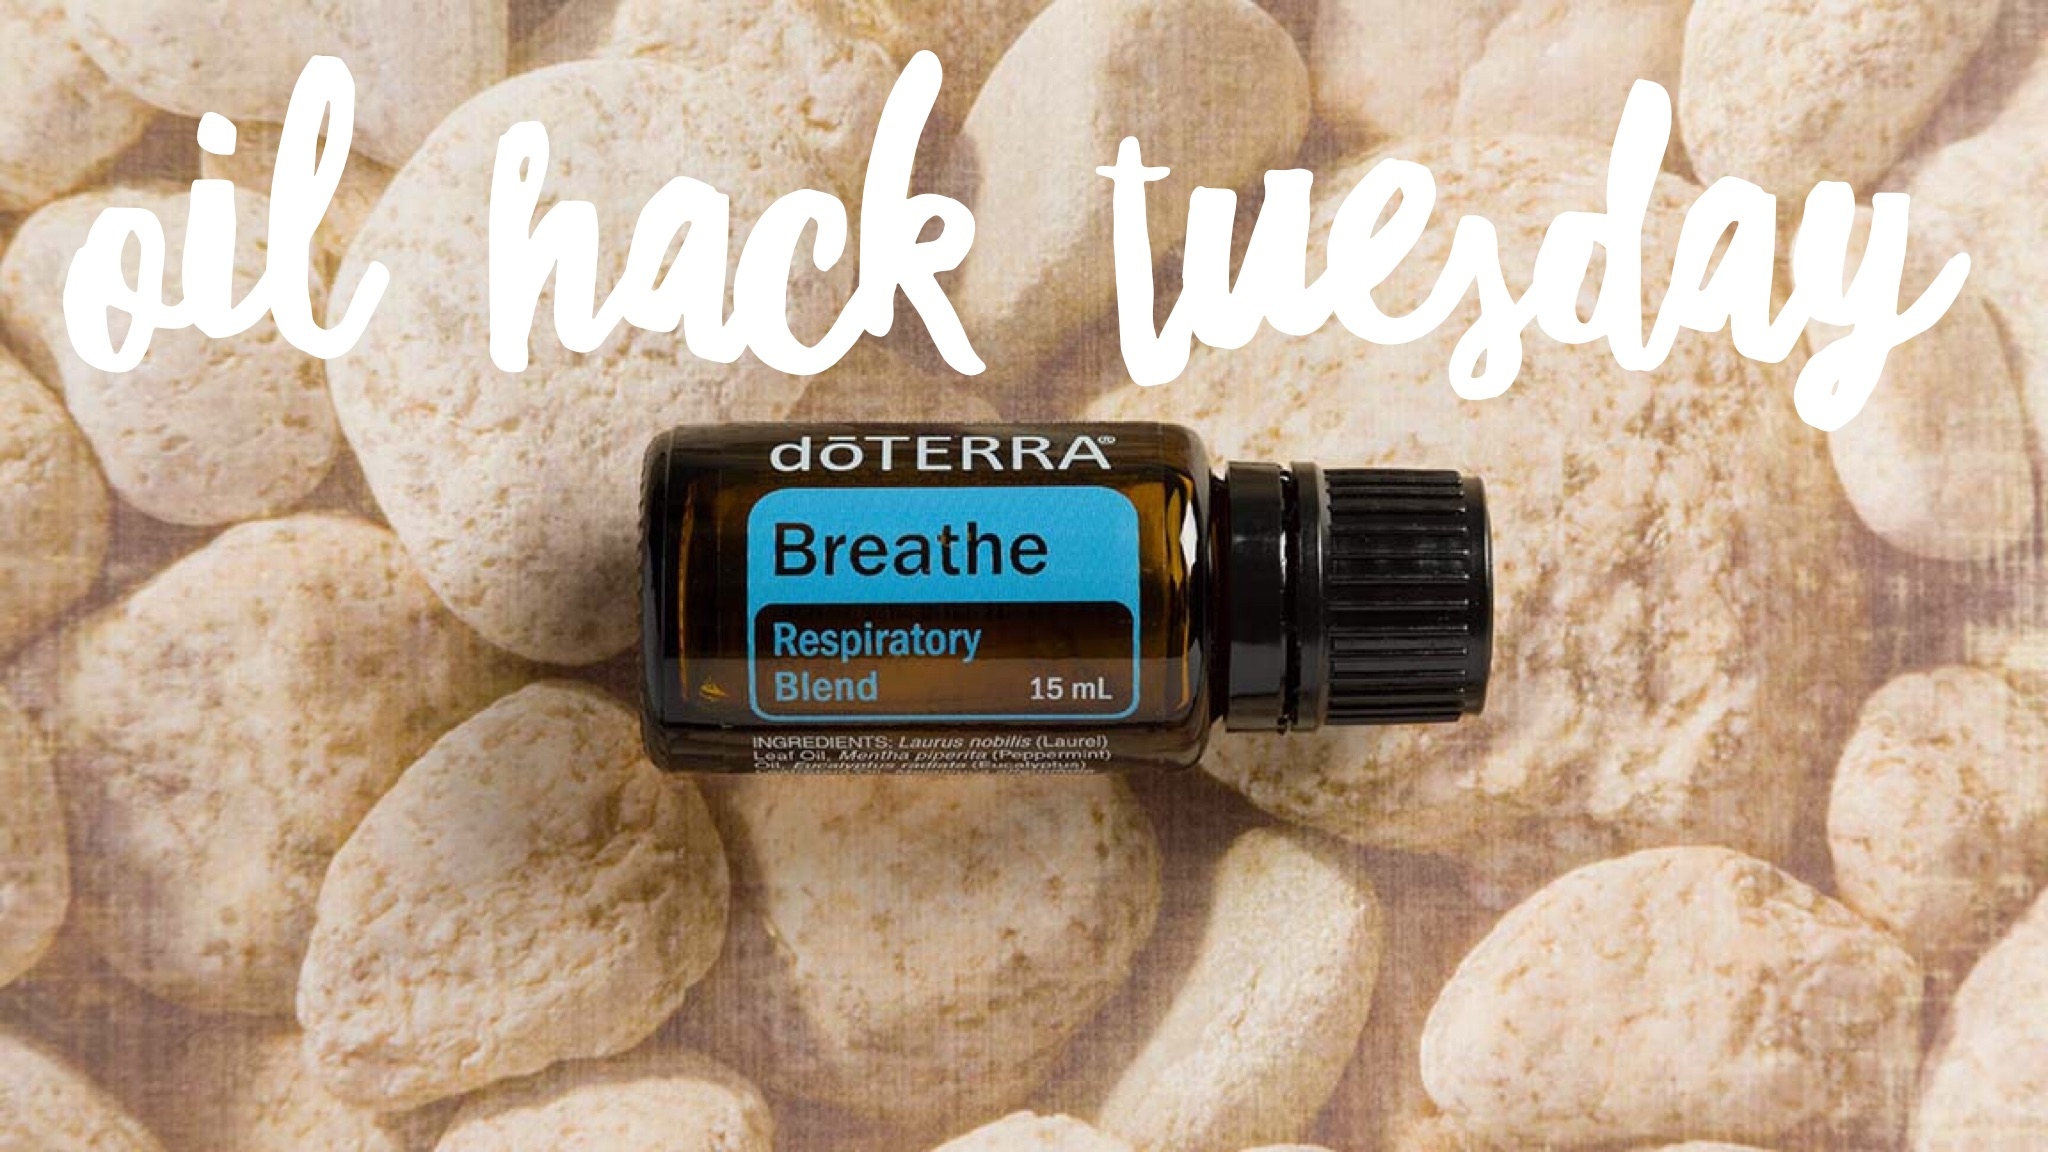 How to Use doTERRA Breathe Essential Oil - JennOldham.com